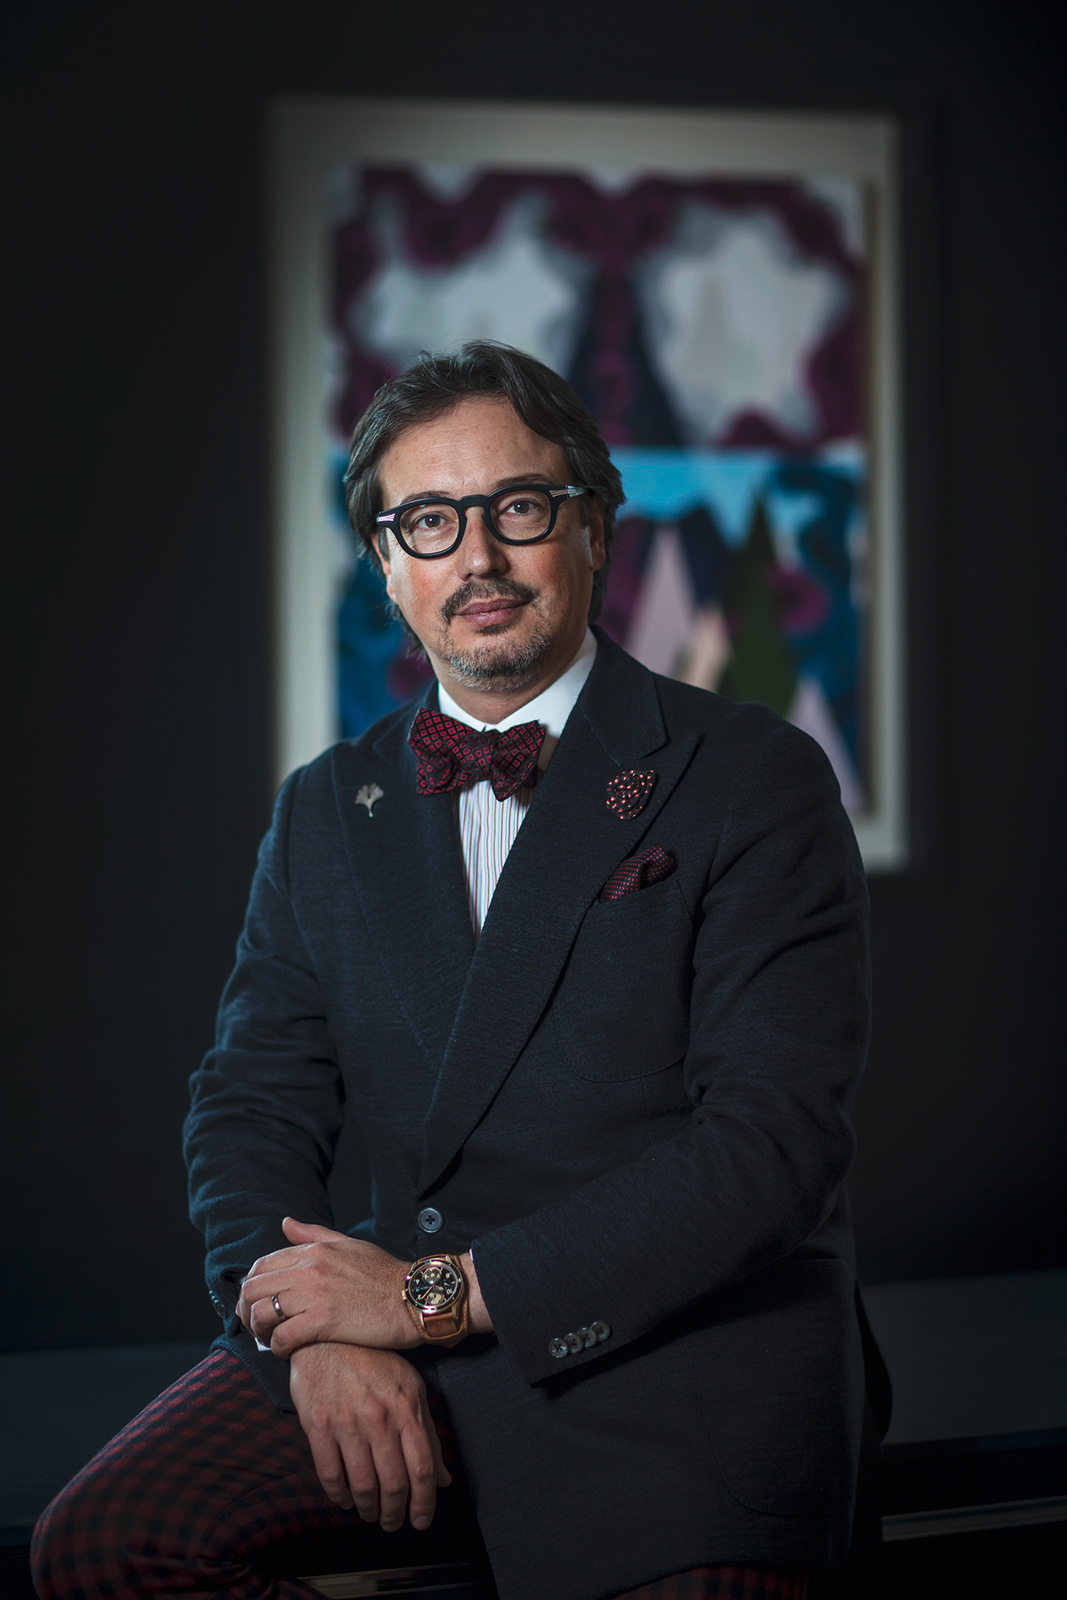 Davide Cerrato, managing director of Montblanc's watch division. - www.revolution.watch